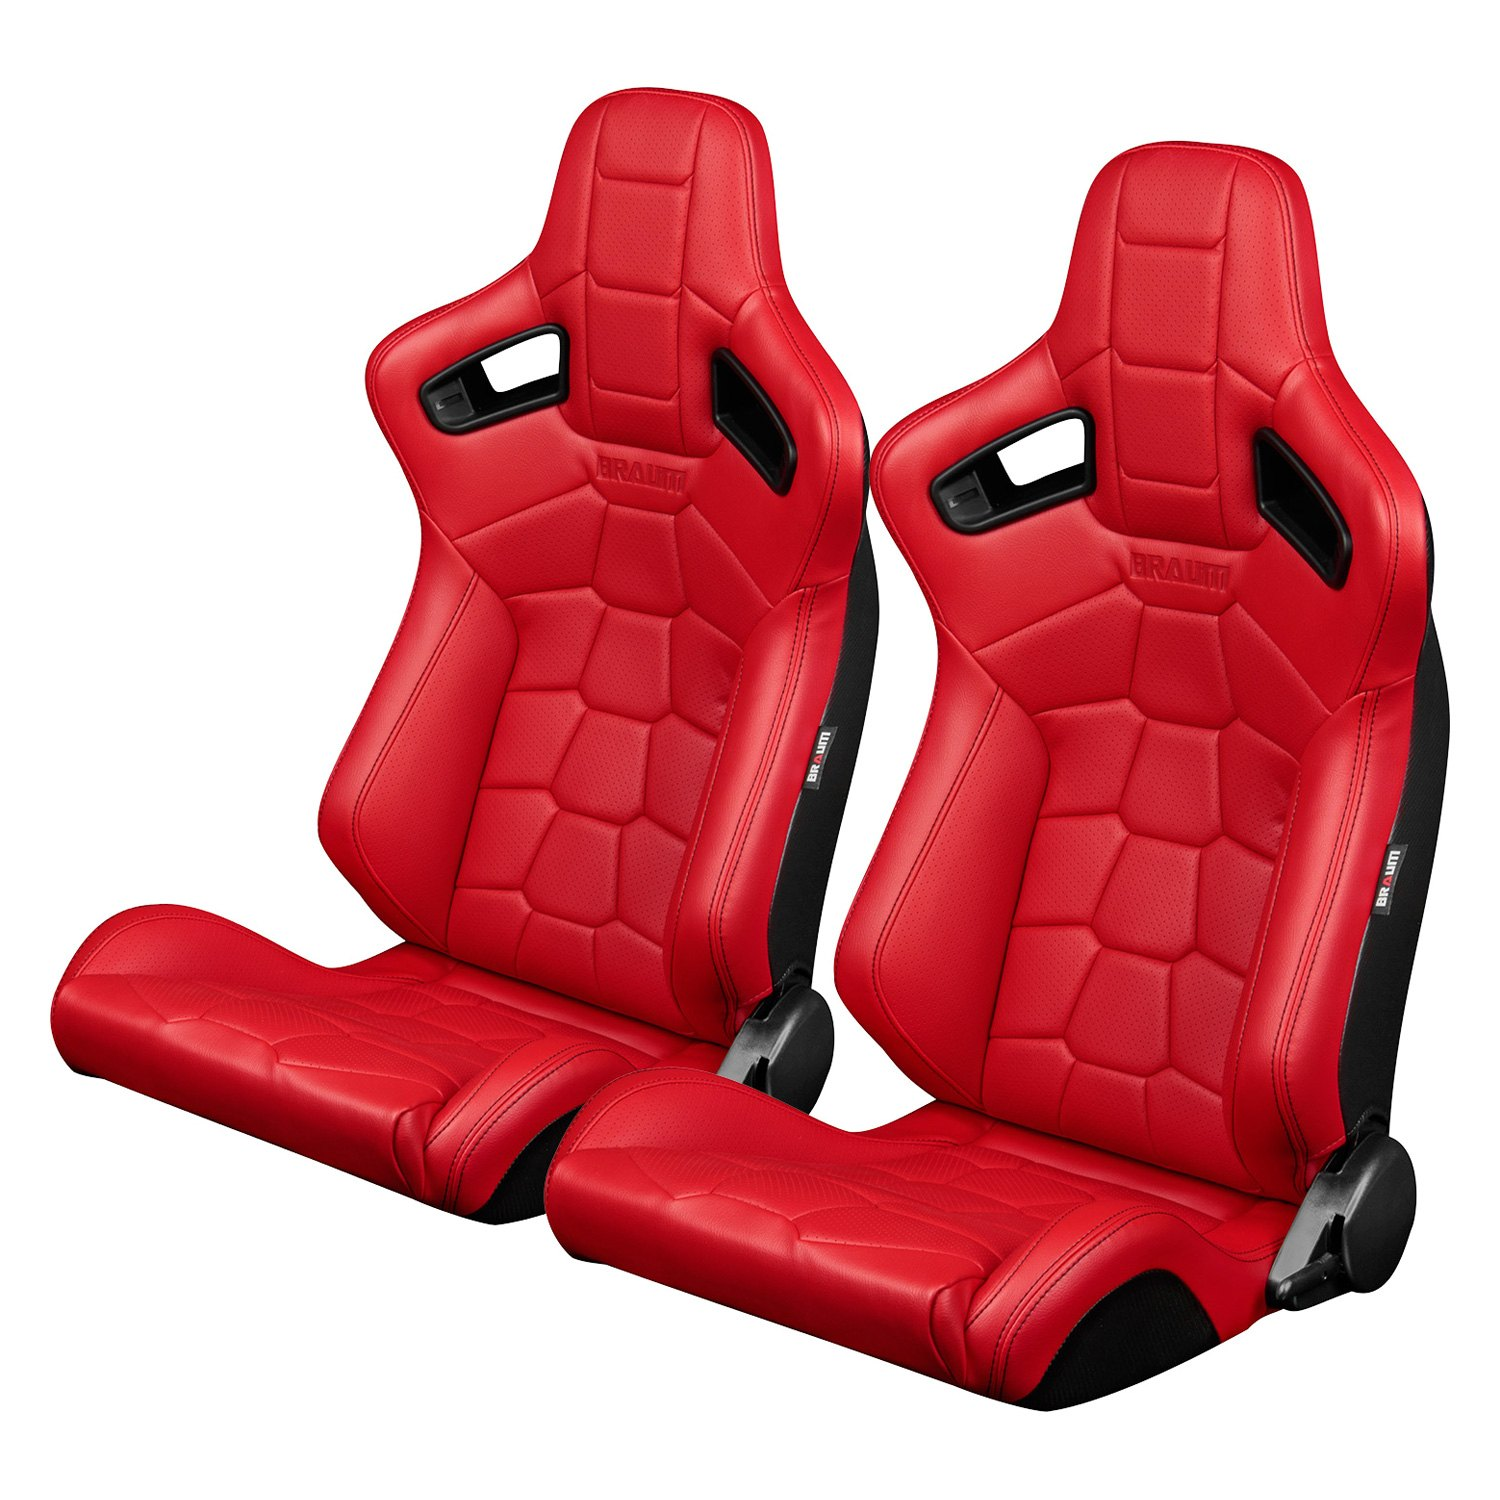 extraordinary dodge challenger seat covers aratorn sport cars. Black Bedroom Furniture Sets. Home Design Ideas